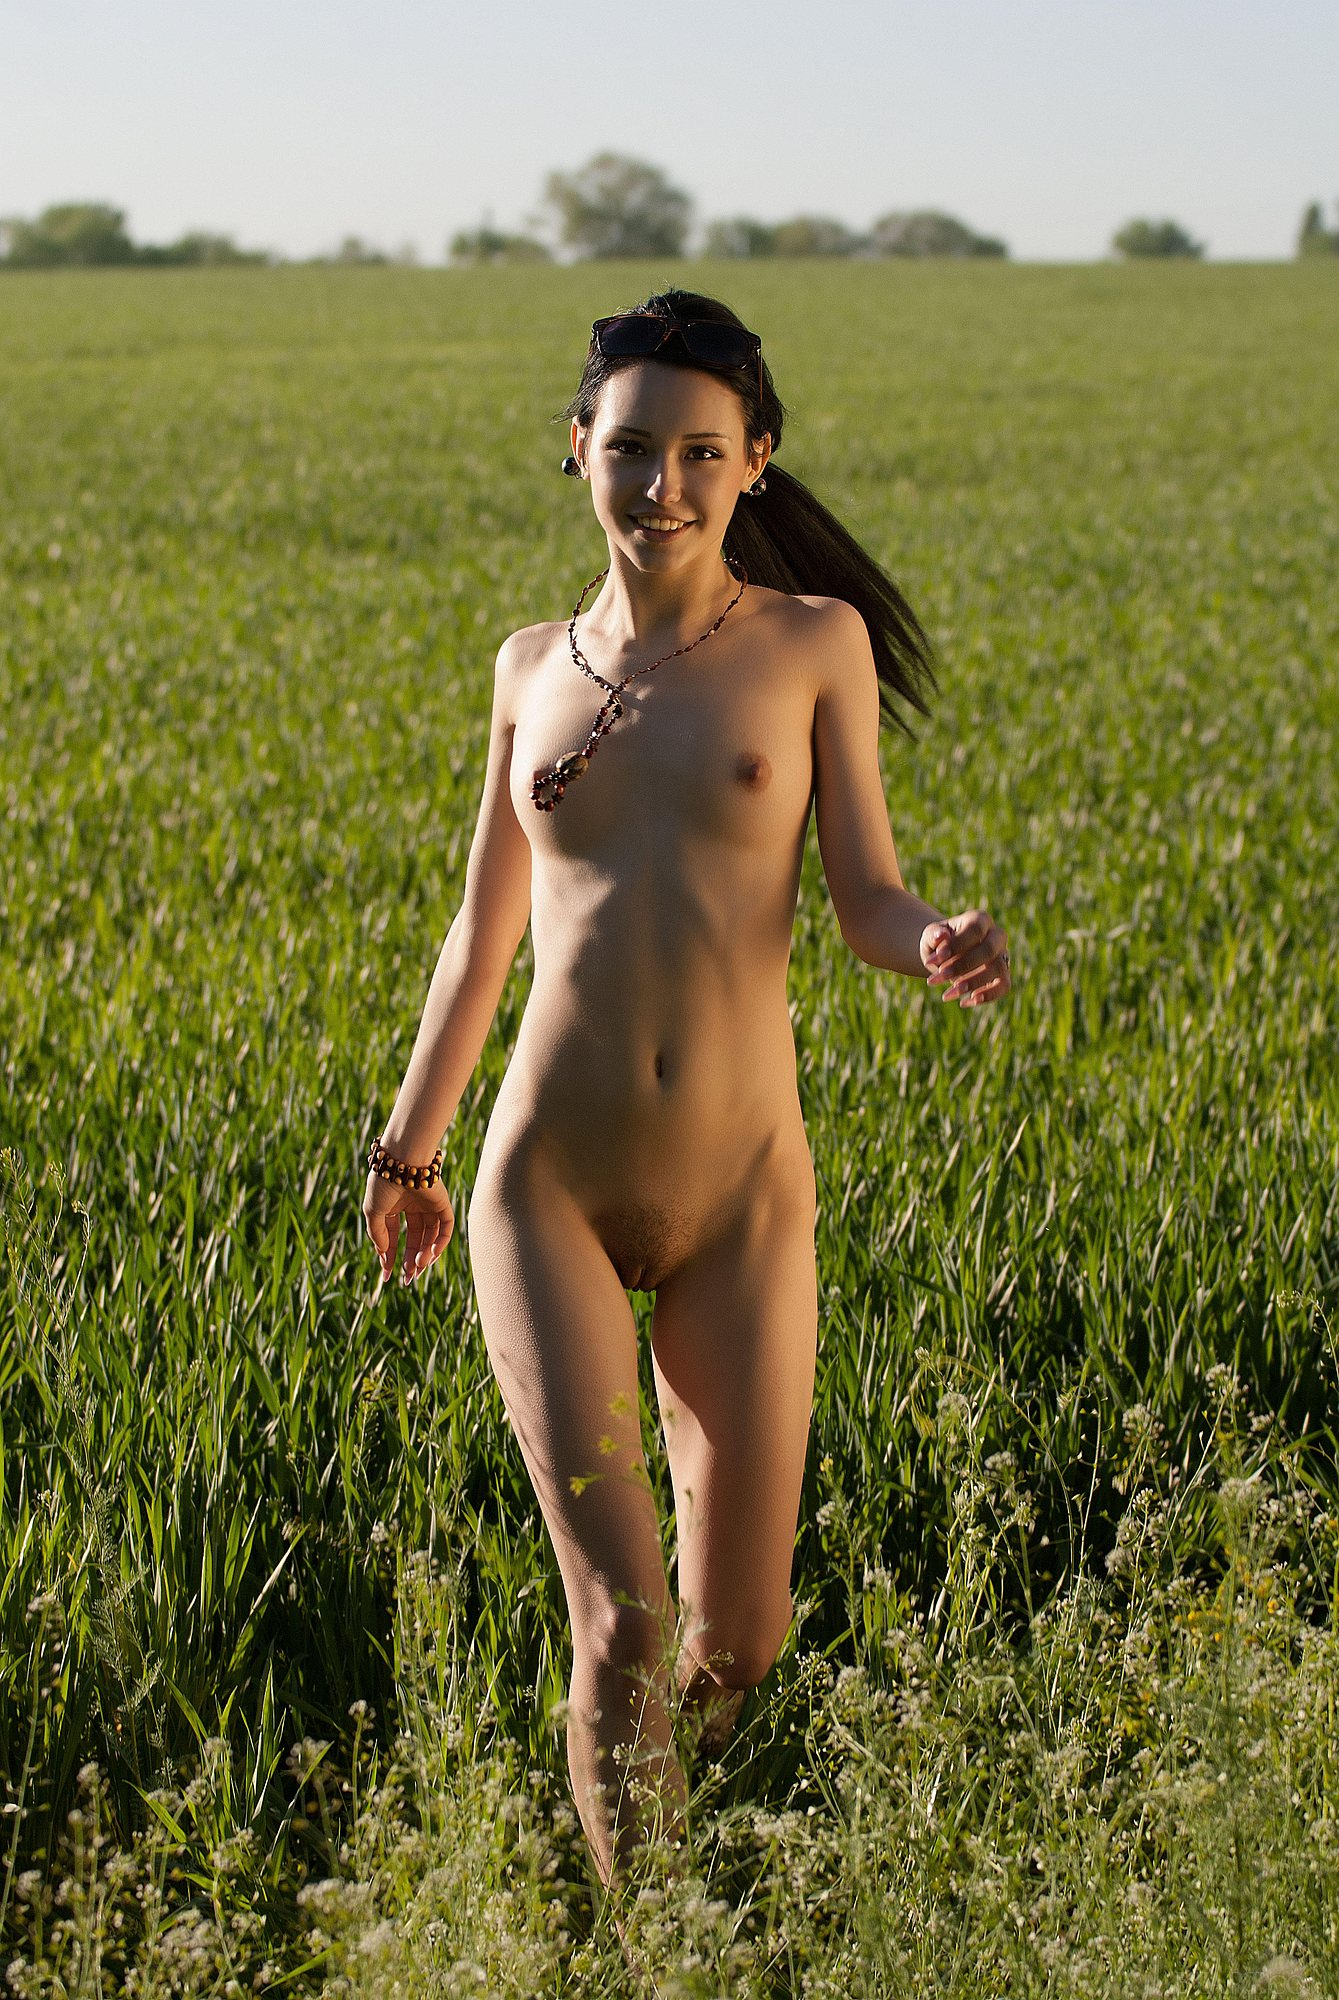 Outdoor Teen Nude